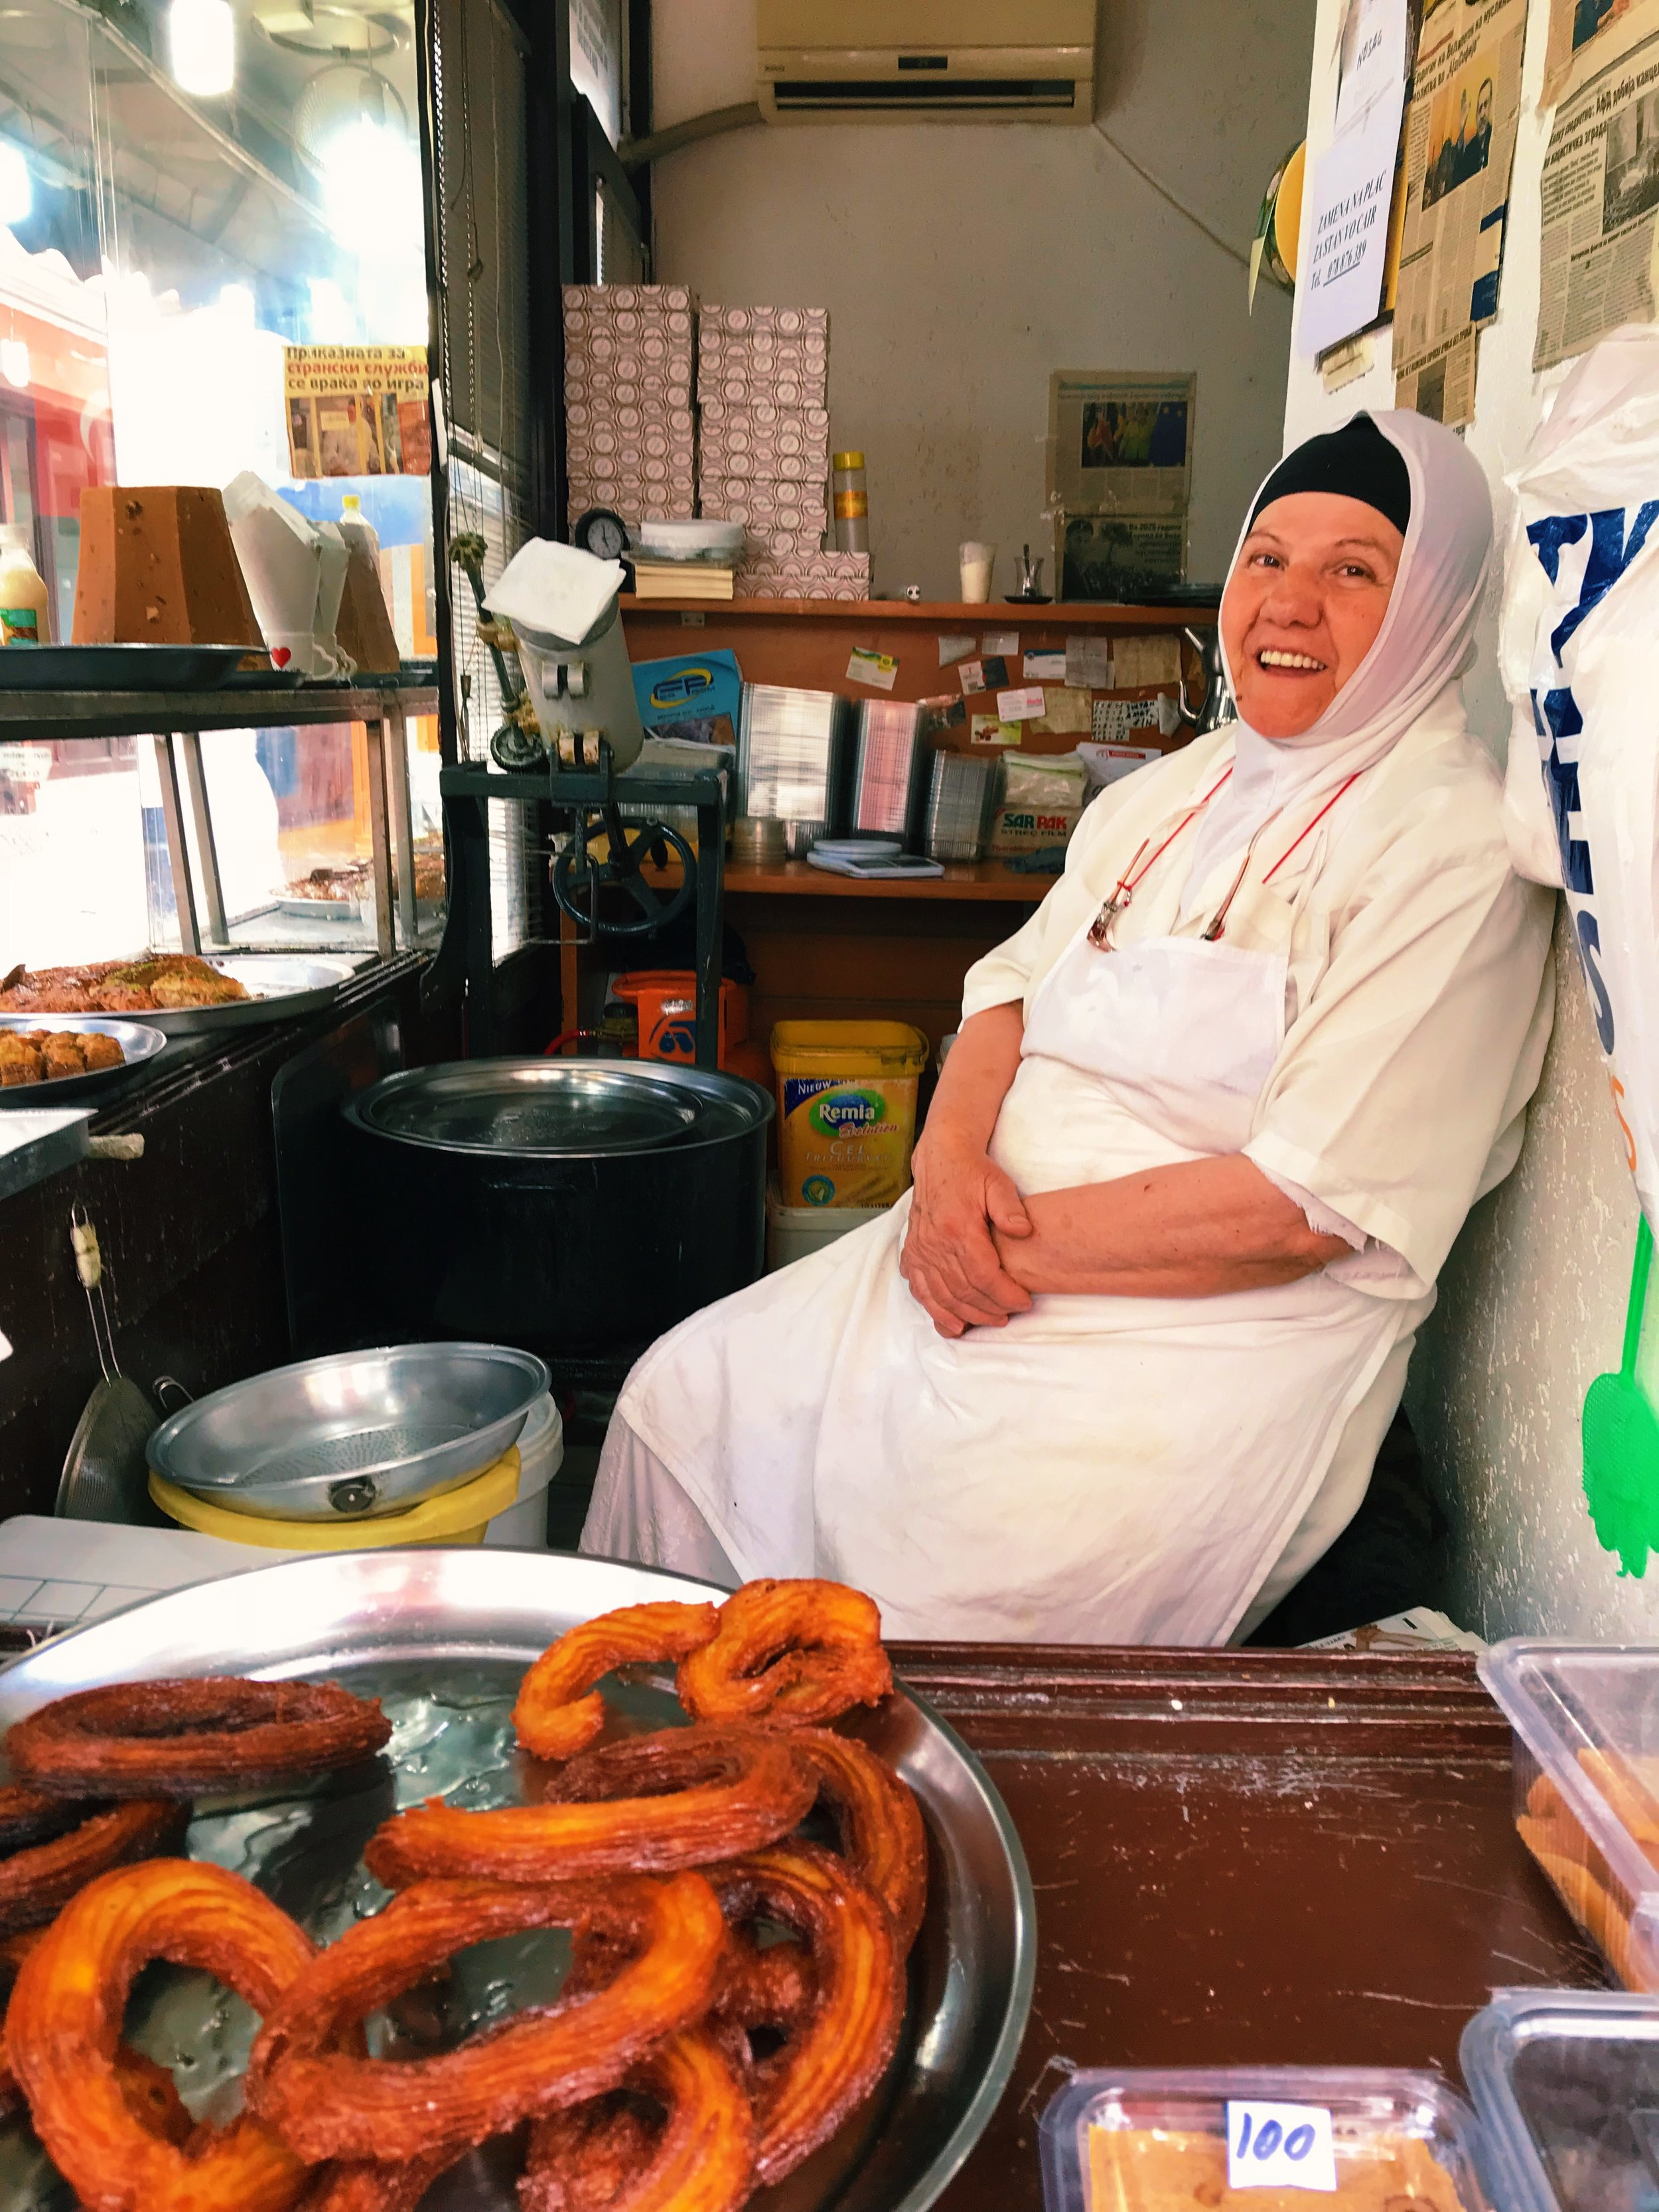 These sweet, fried rings are called tulumba and this lady serves them warm. She married a Turkish man and called this pastry shop Istanbul, serving sweets from Turkey. Interestingly, she's been in the newspapers for her pistachio baklava, which she named after Angela Merkel.